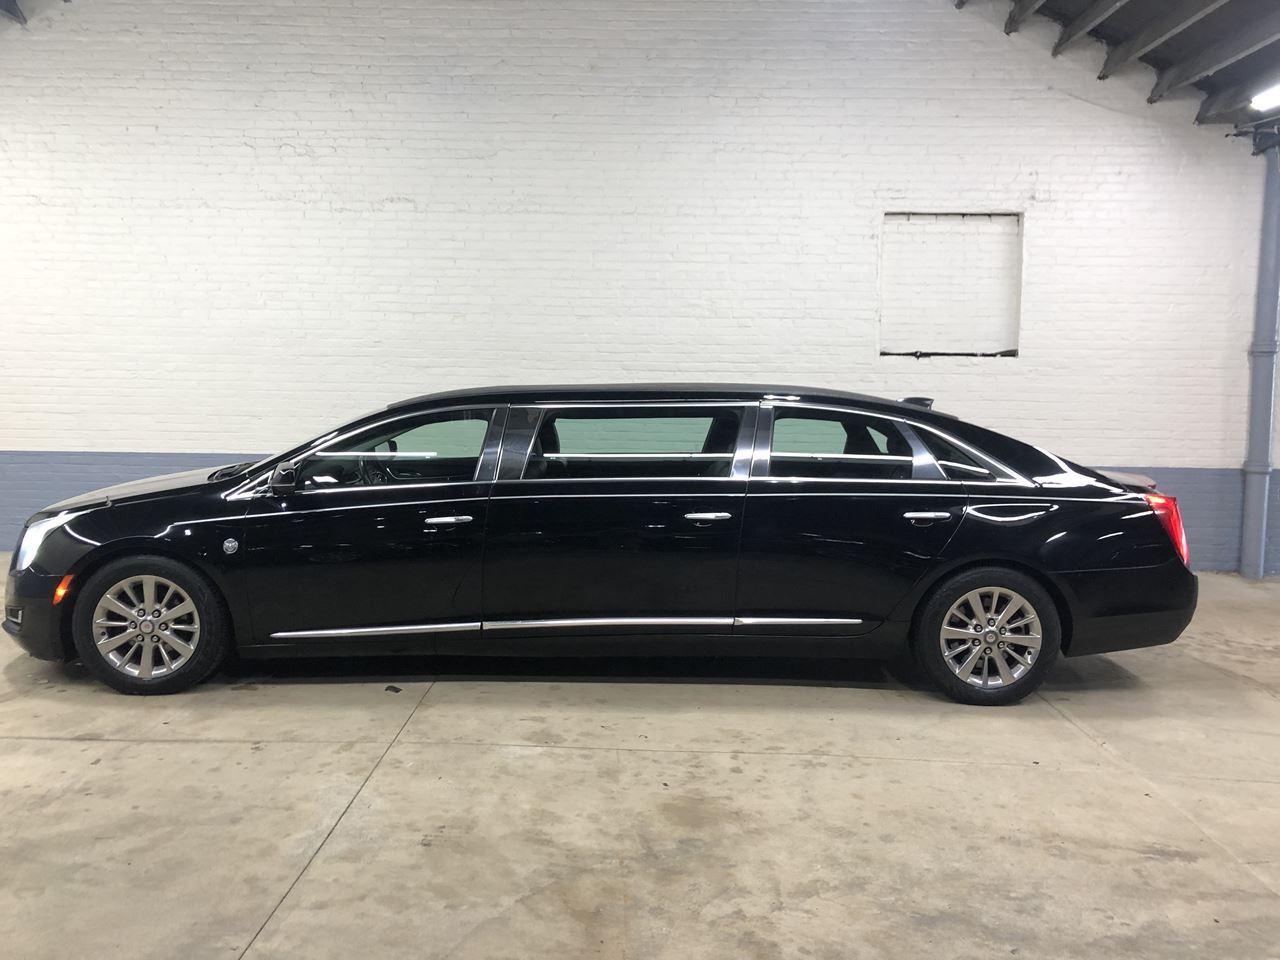 2015 Cadillac Federal 6 Door Limousine